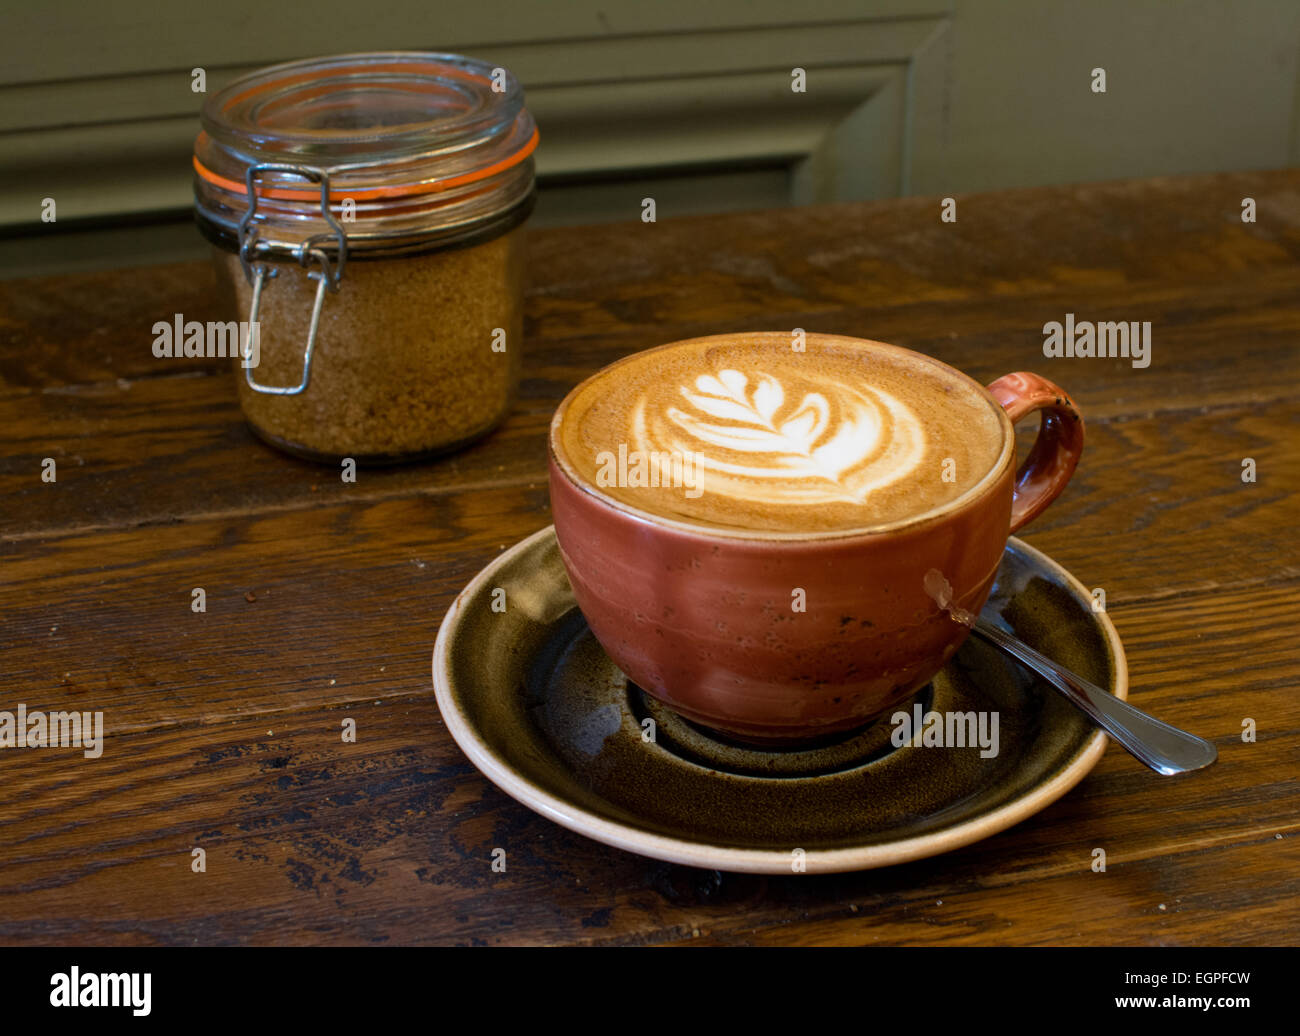 Flat white coffee cup in London - Stock Image